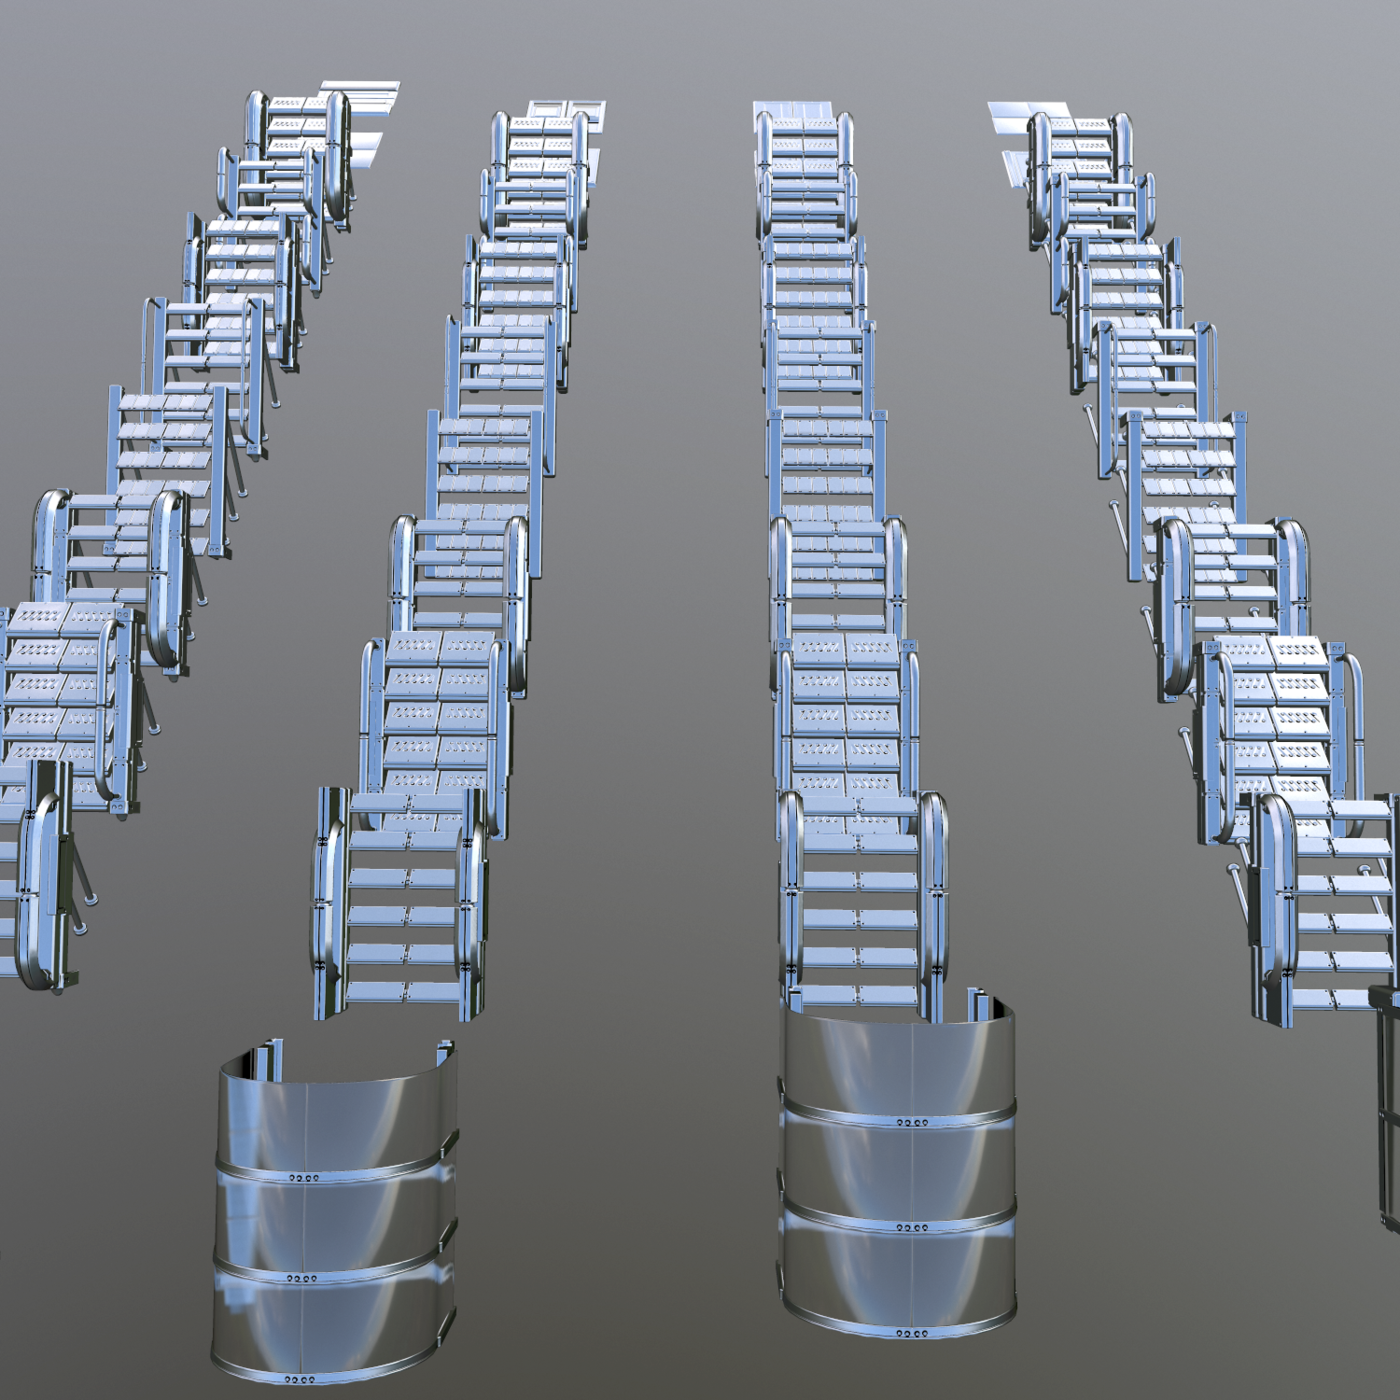 Sci-Fi pack of stairs 40 models Texture 7 sets 3D Model Collection